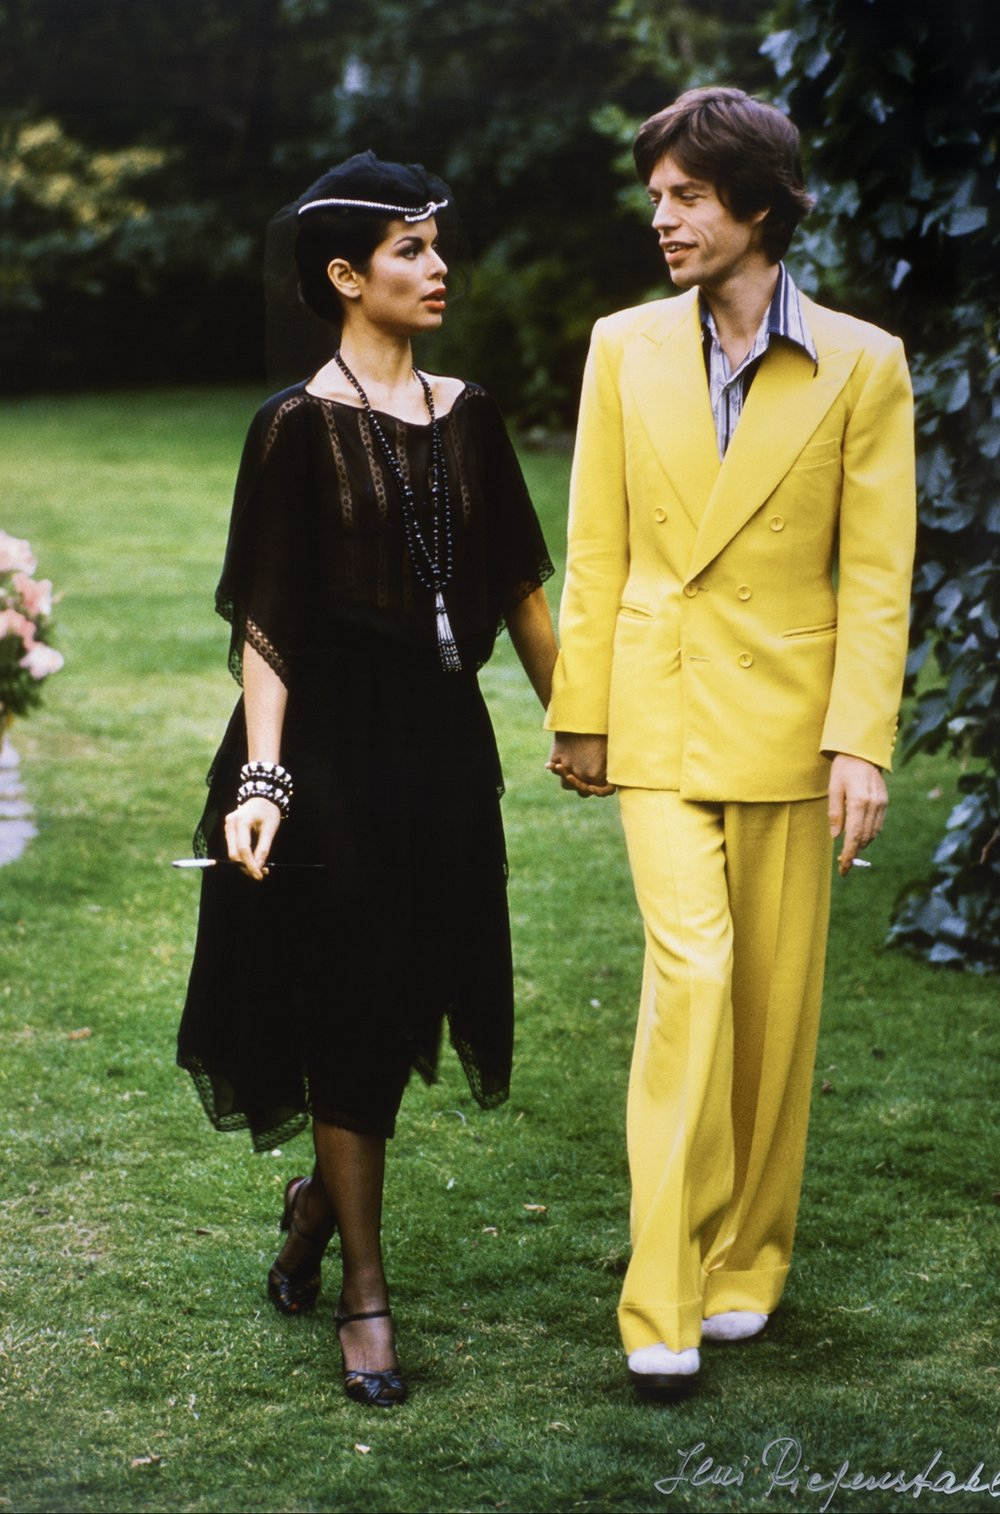 Mick and Bianca Jagger, 1974. Photo: Leni Riefenstahl.